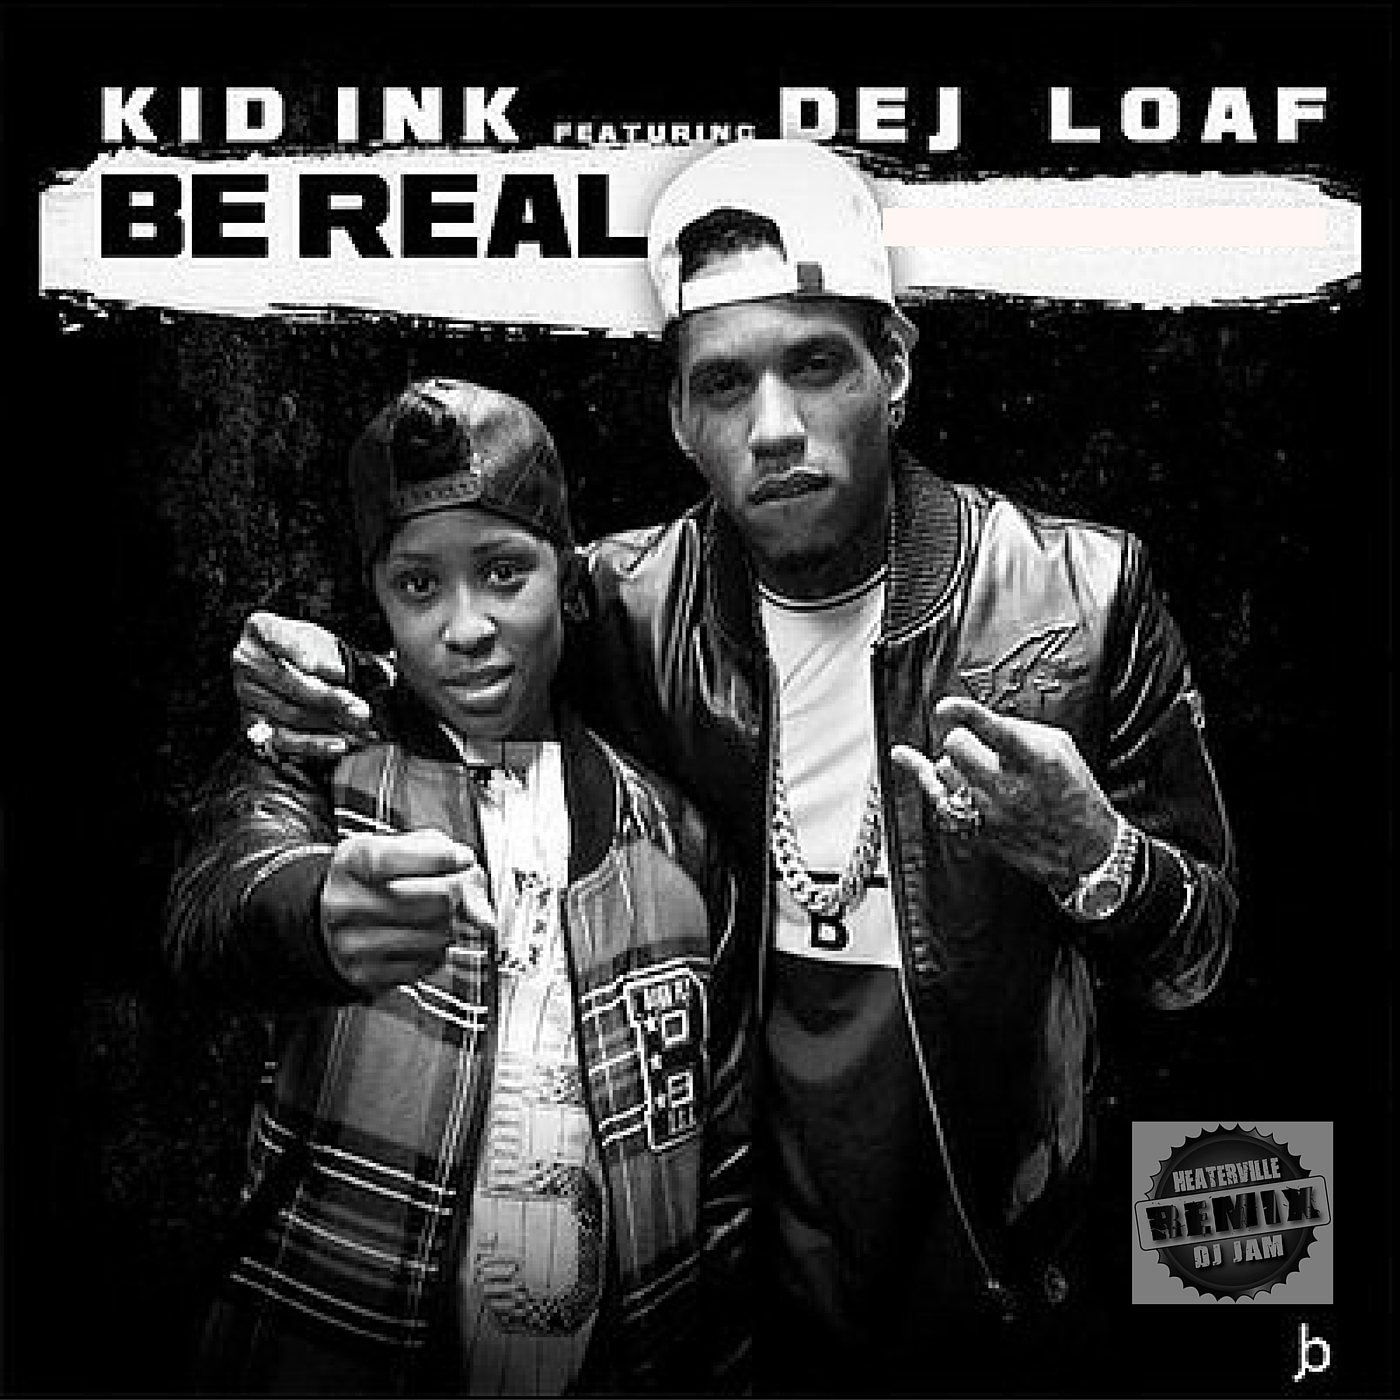 """NEW MUSIC"" Kid Ink Feat. Dej Loaf ""Be Real (DJ Jam HeaterVille remix)"